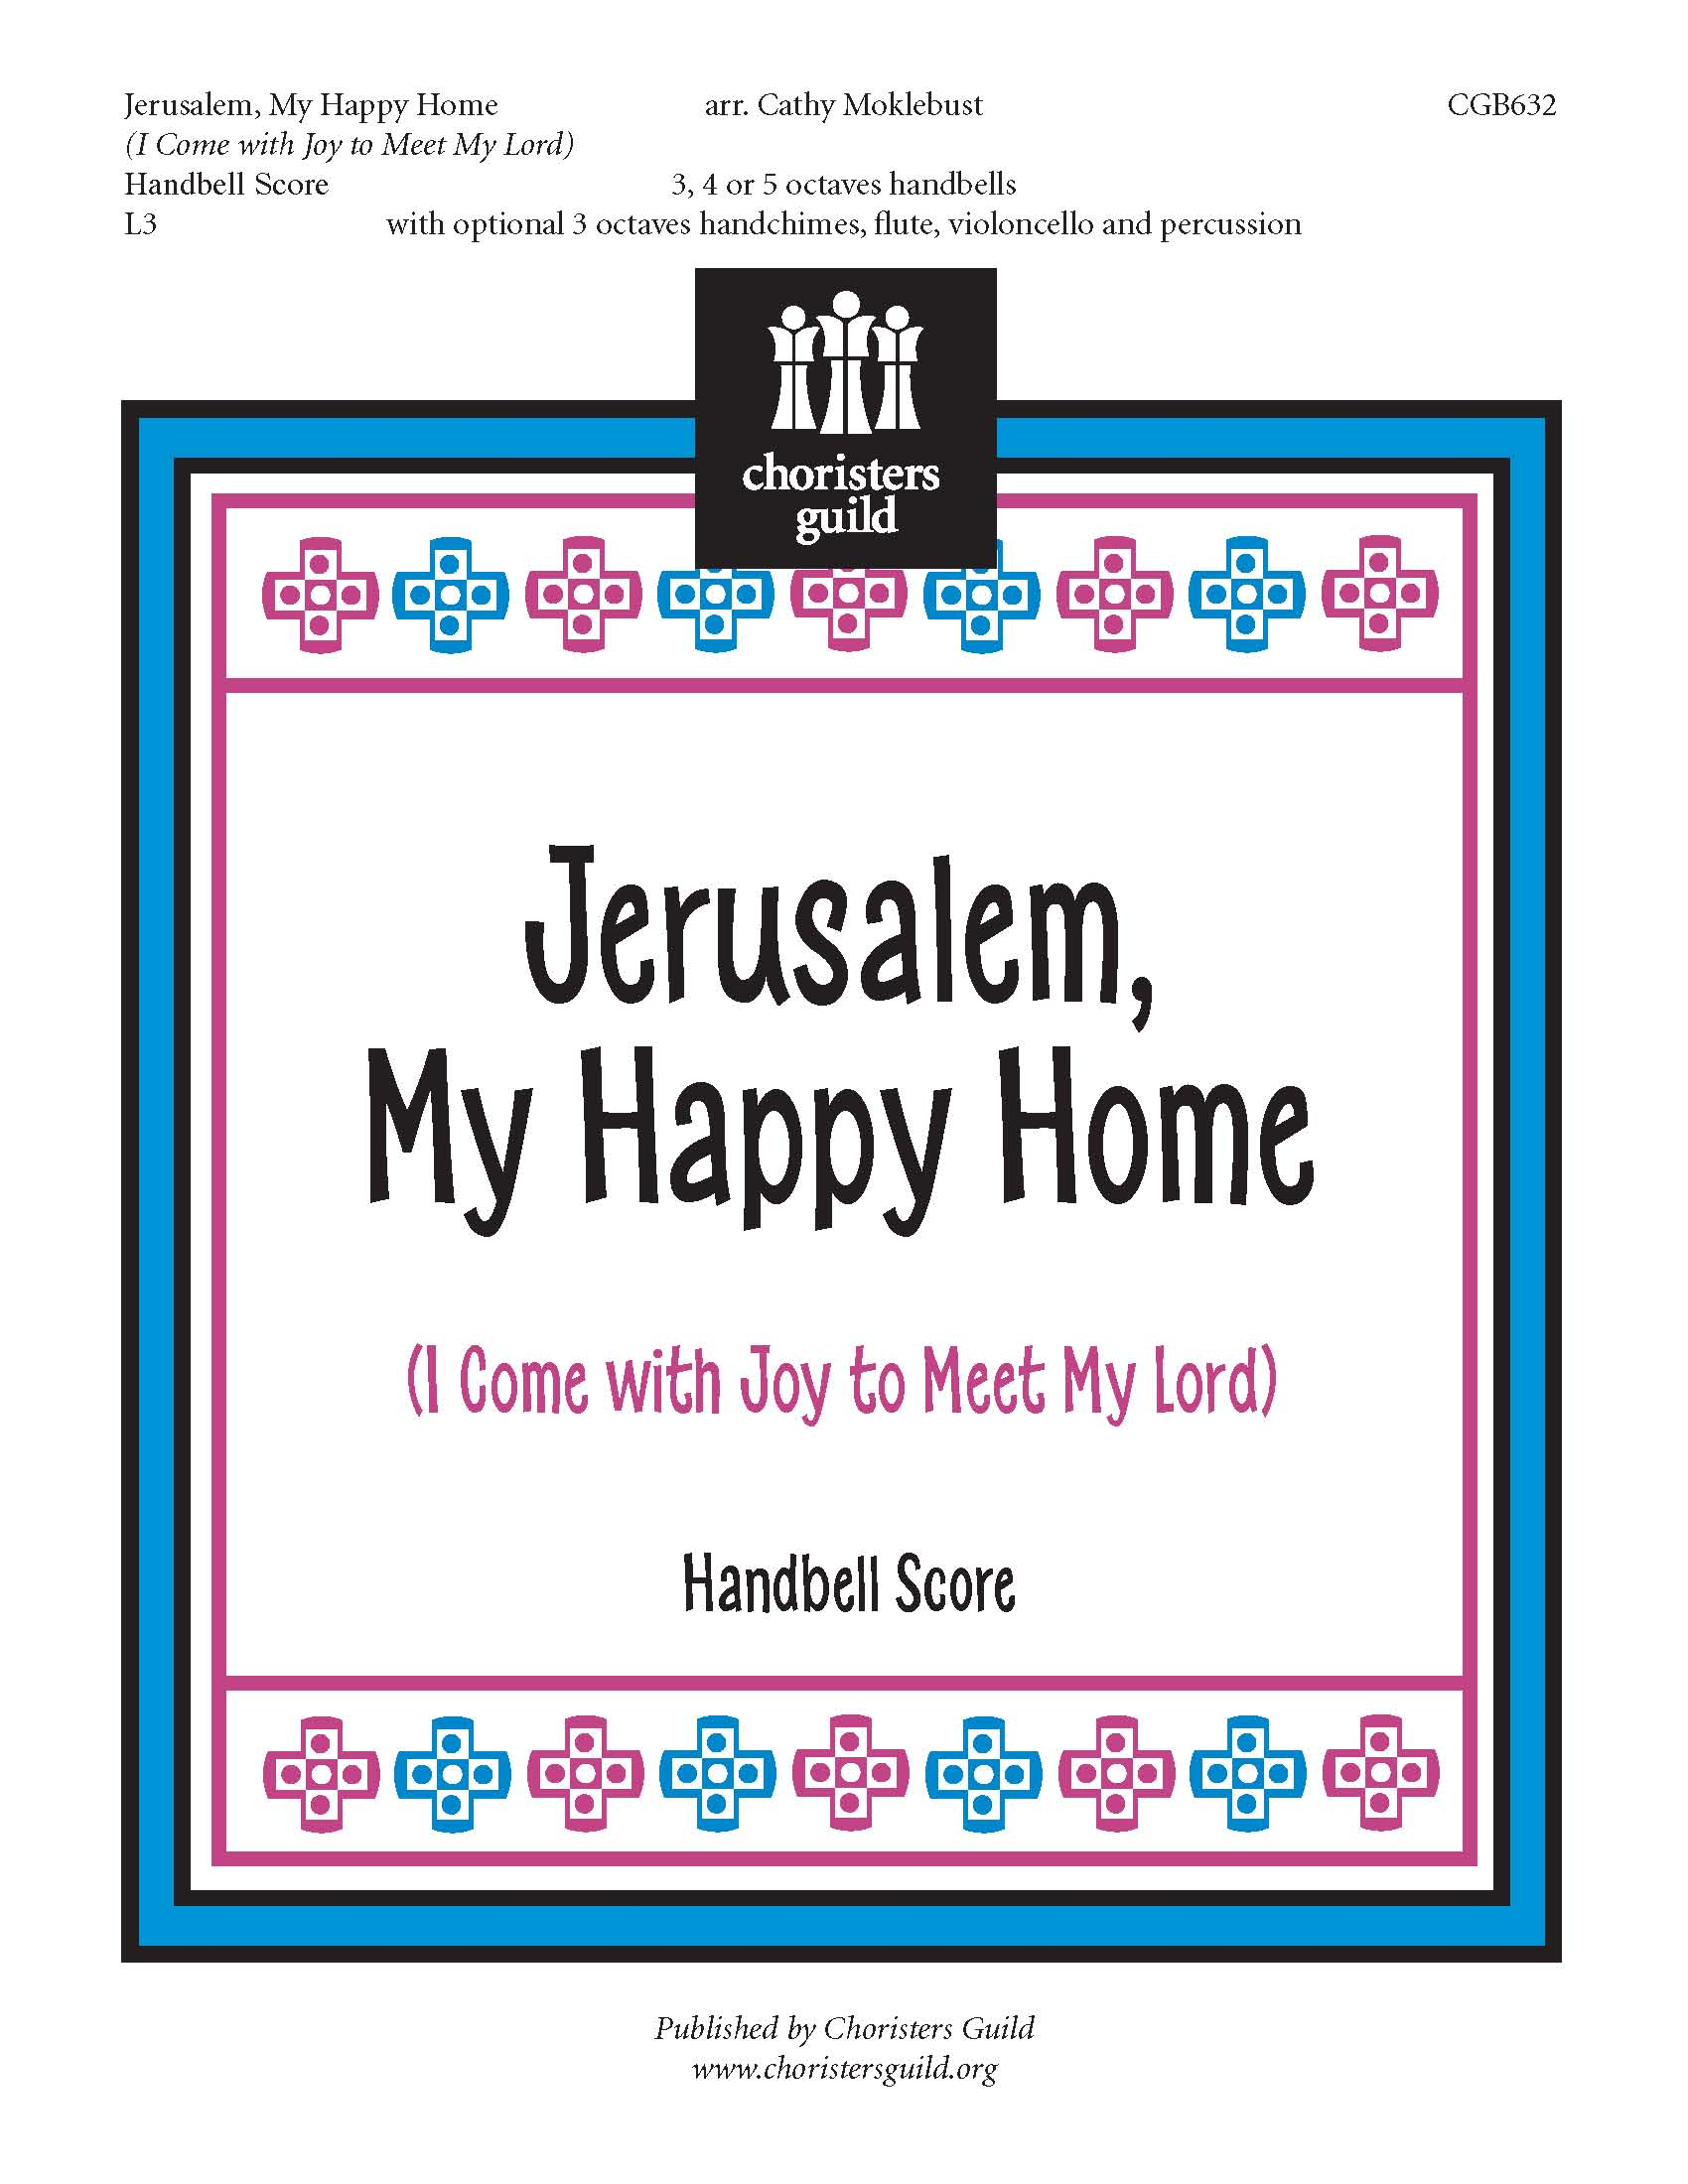 Jerusalem, My Happy Home Handbell Score